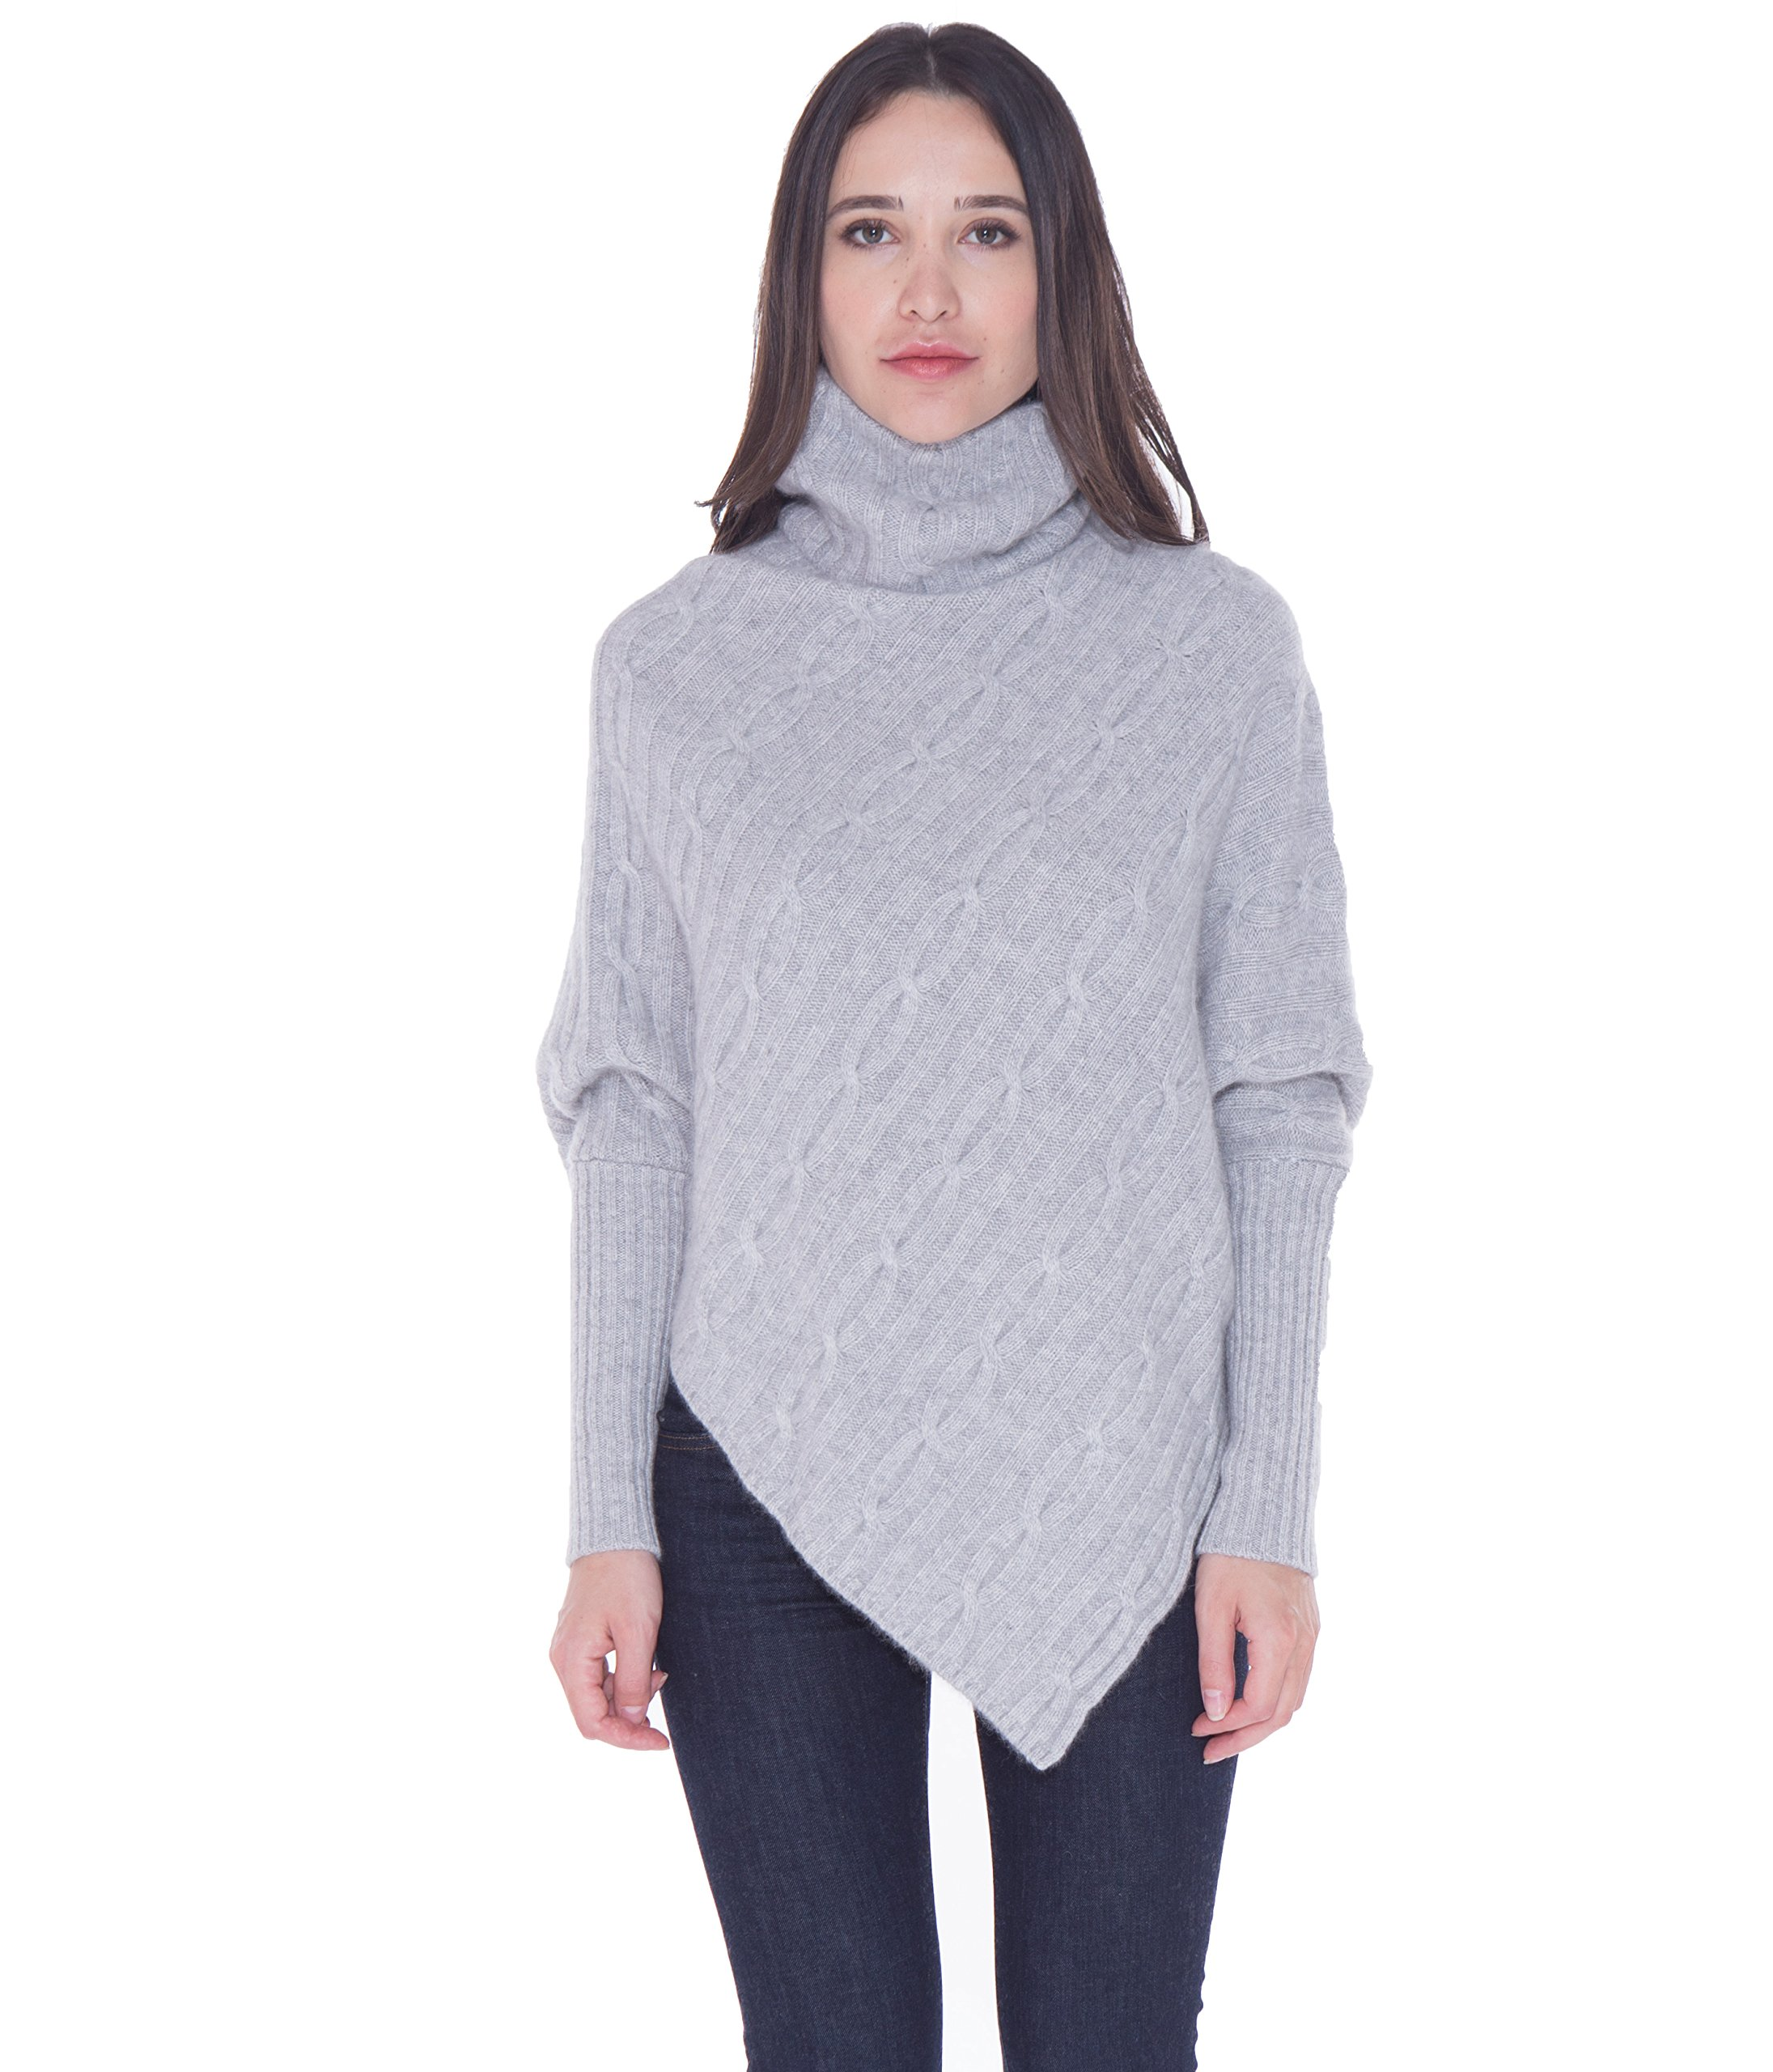 cashmere 4 U 100% Cashmere Poncho Thick Cable Knit Turtleneck Open Side Sweater For Women by (Argent)